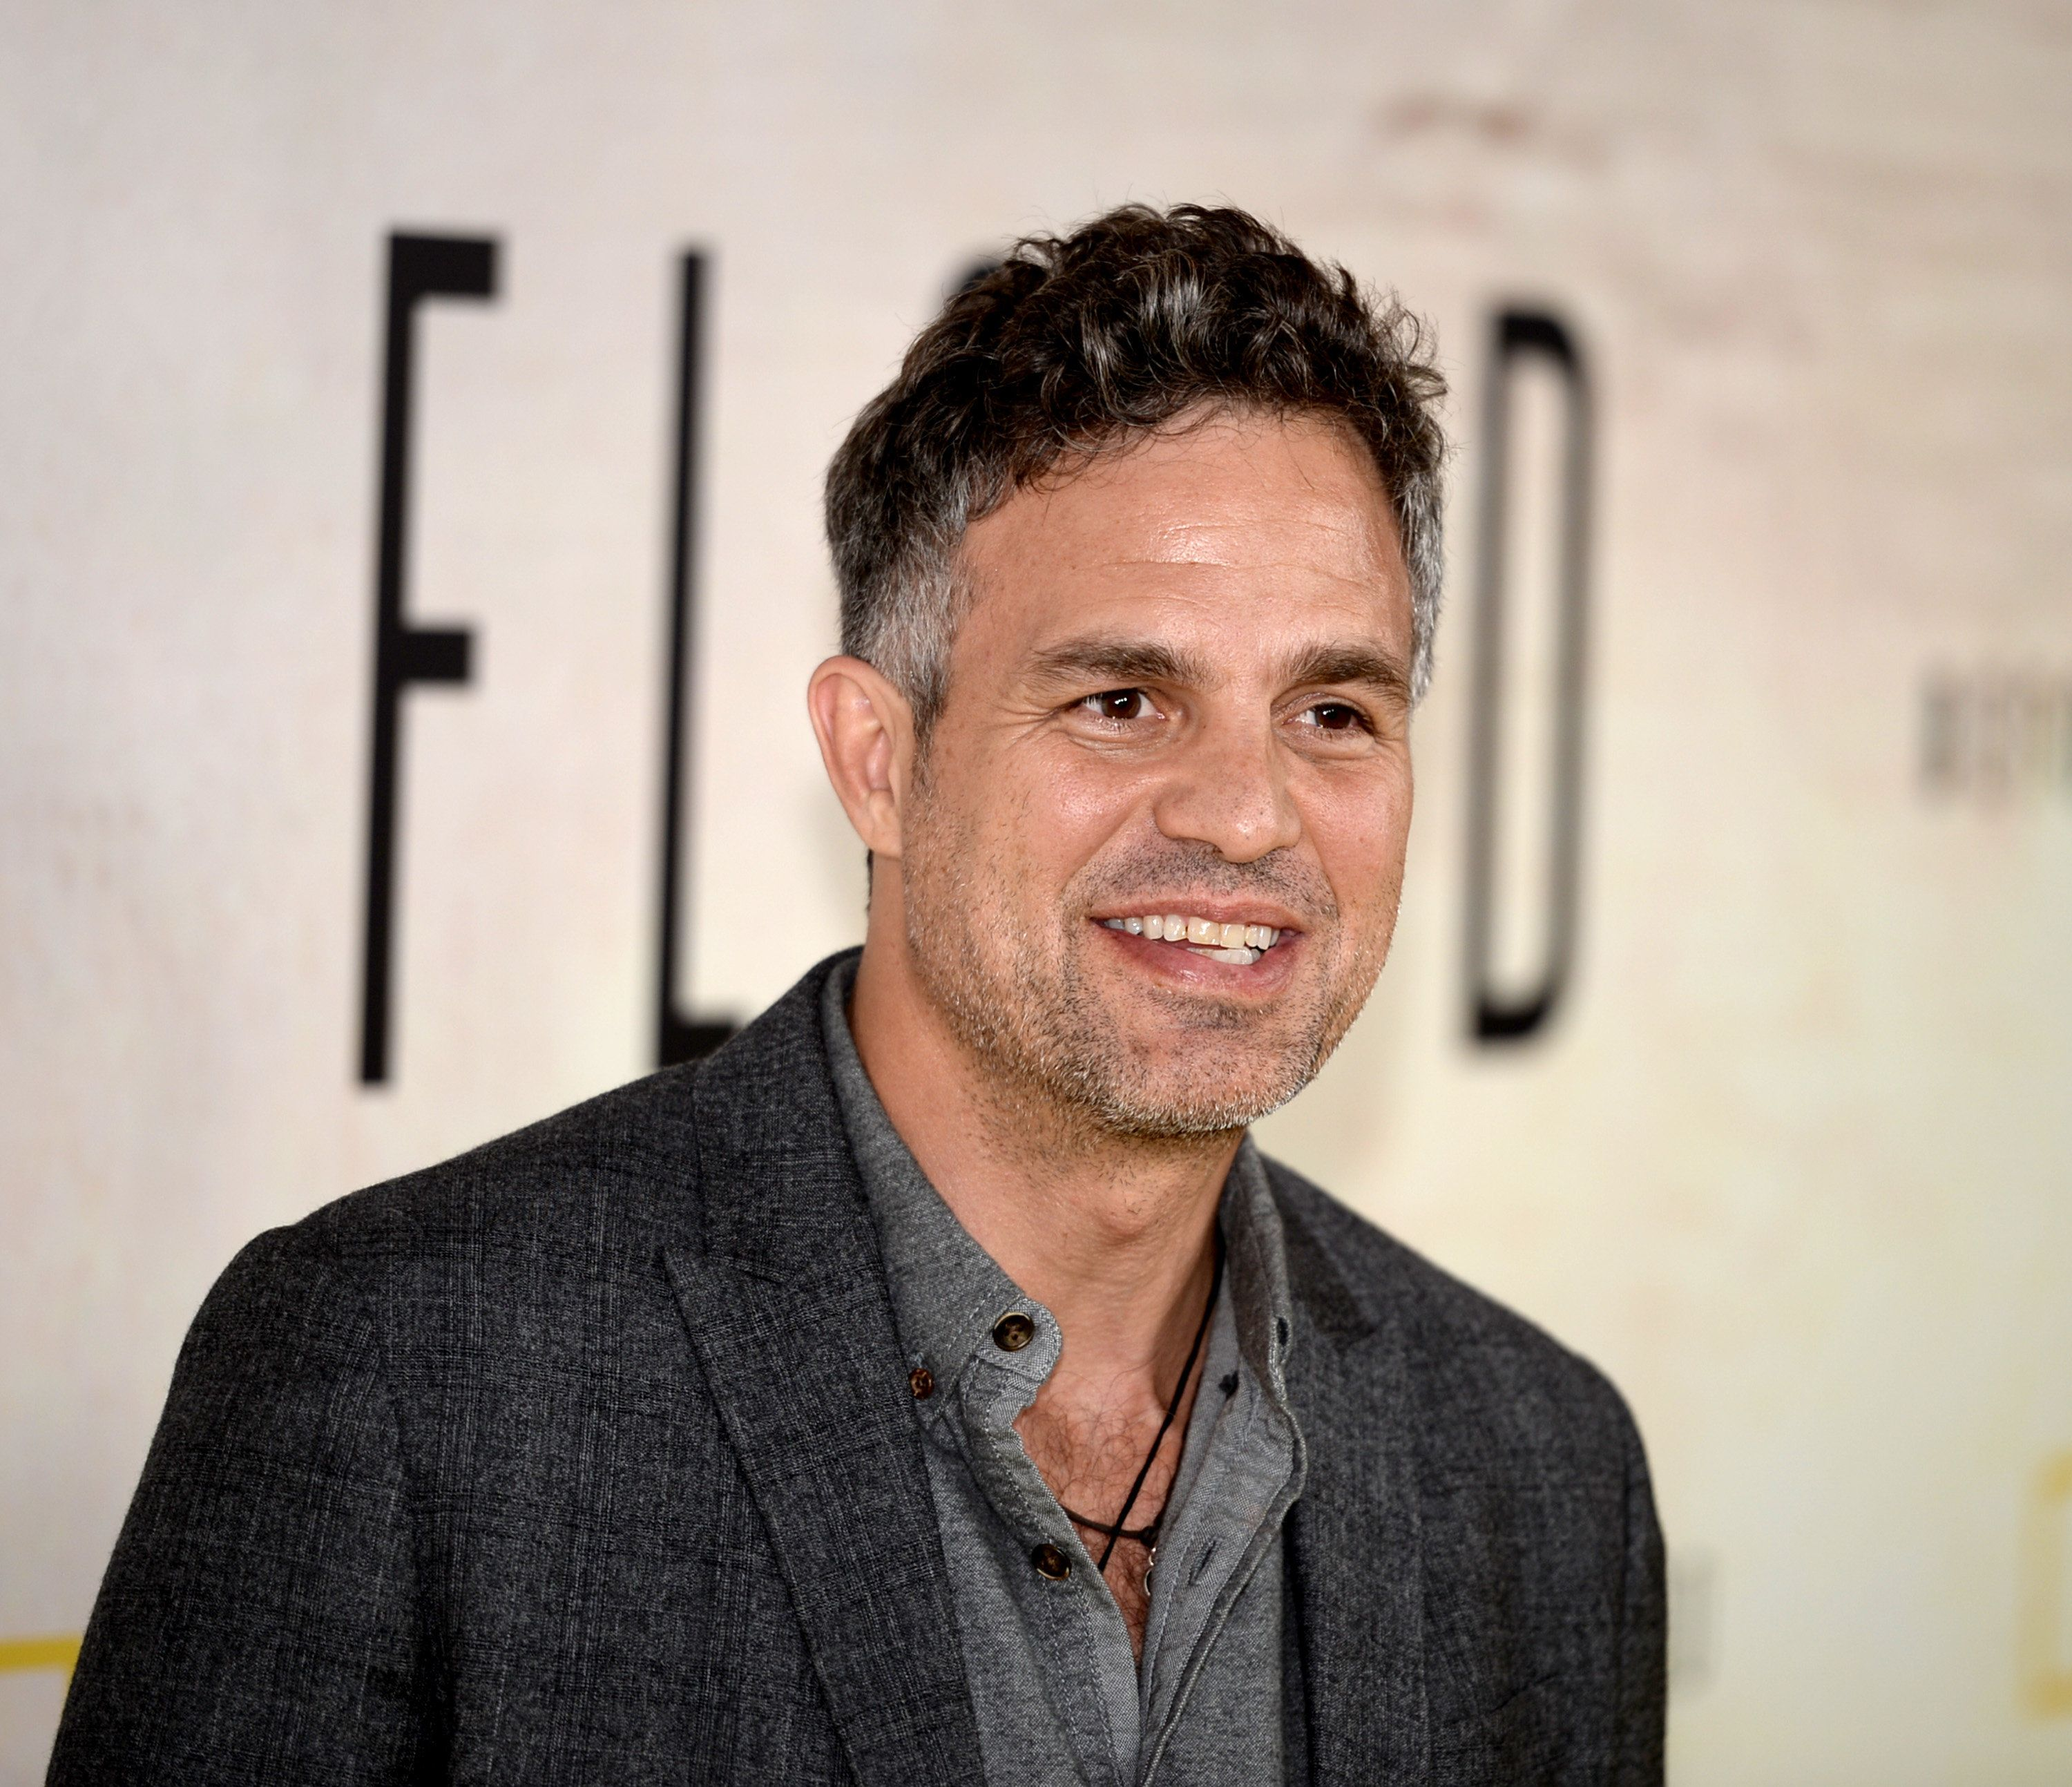 NEW YORK, NY - OCTOBER 20: Mark Ruffalo attends the 'Before The Flood' New York premiere at United Nations Headquarters on October 20, 2016 in New York City.  (Photo by Andrew Toth/WireImage)